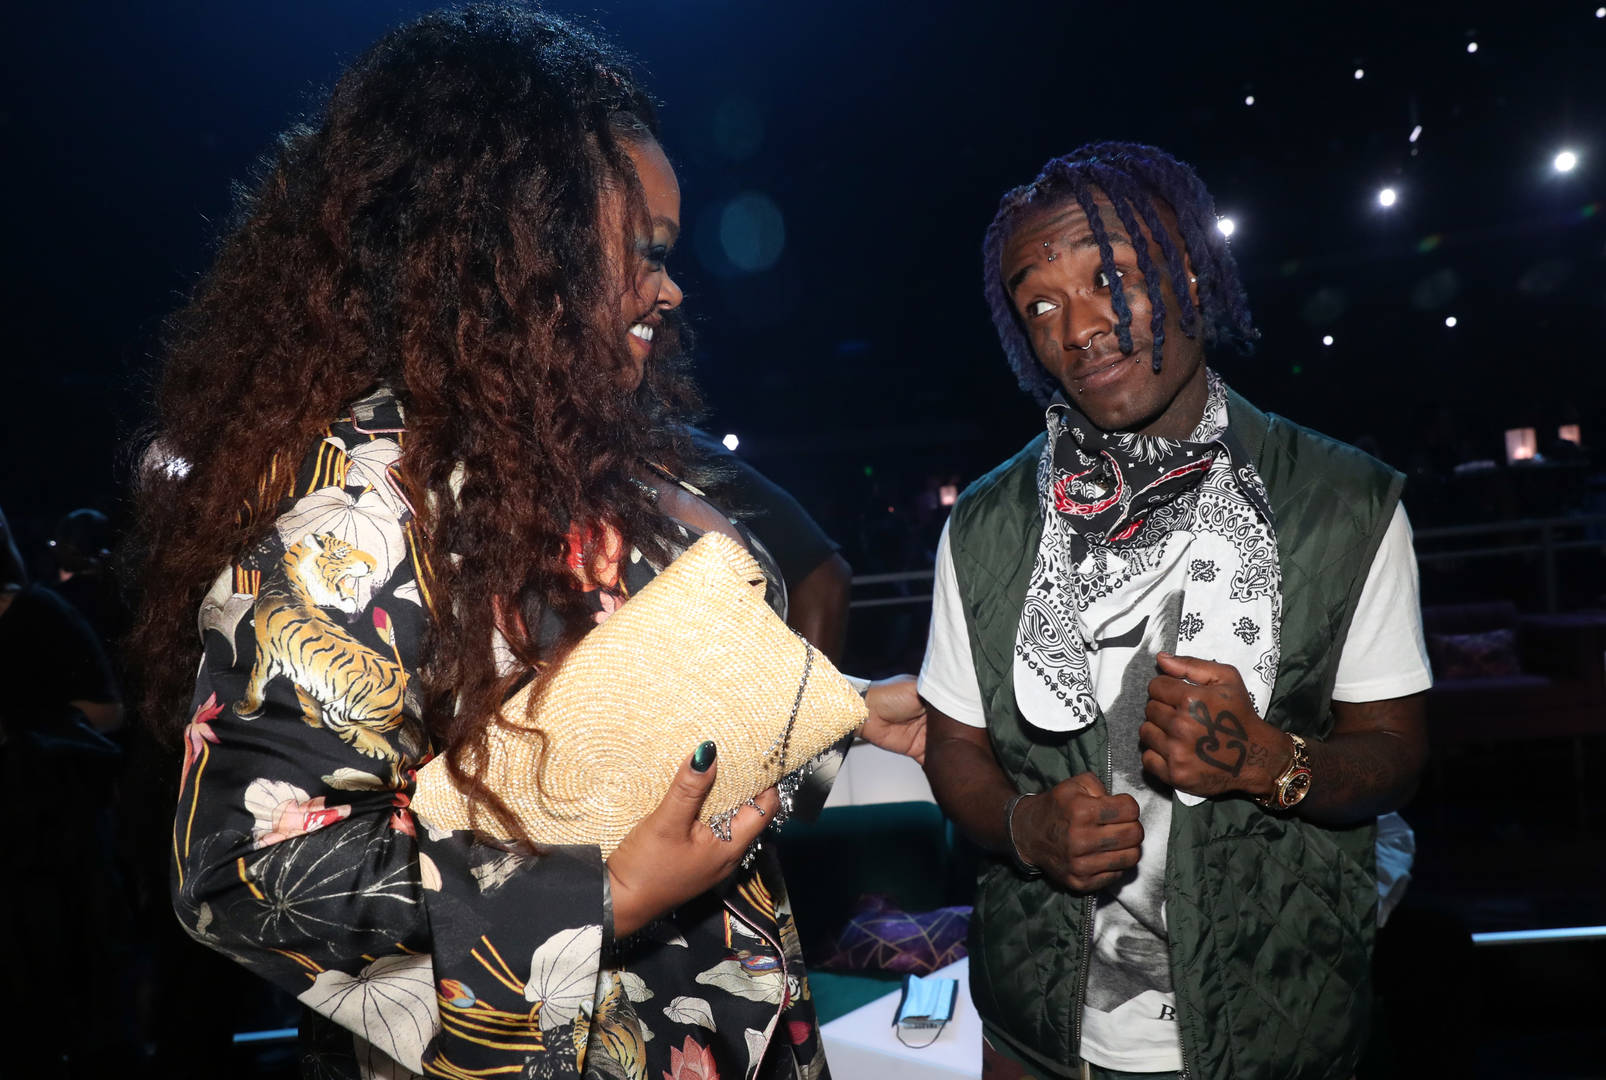 Jill Scott and Lil Uzi Vert participate in the BET Awards 2021 at the Microsoft Theater on June 27, 2021 in Los Angeles, California.